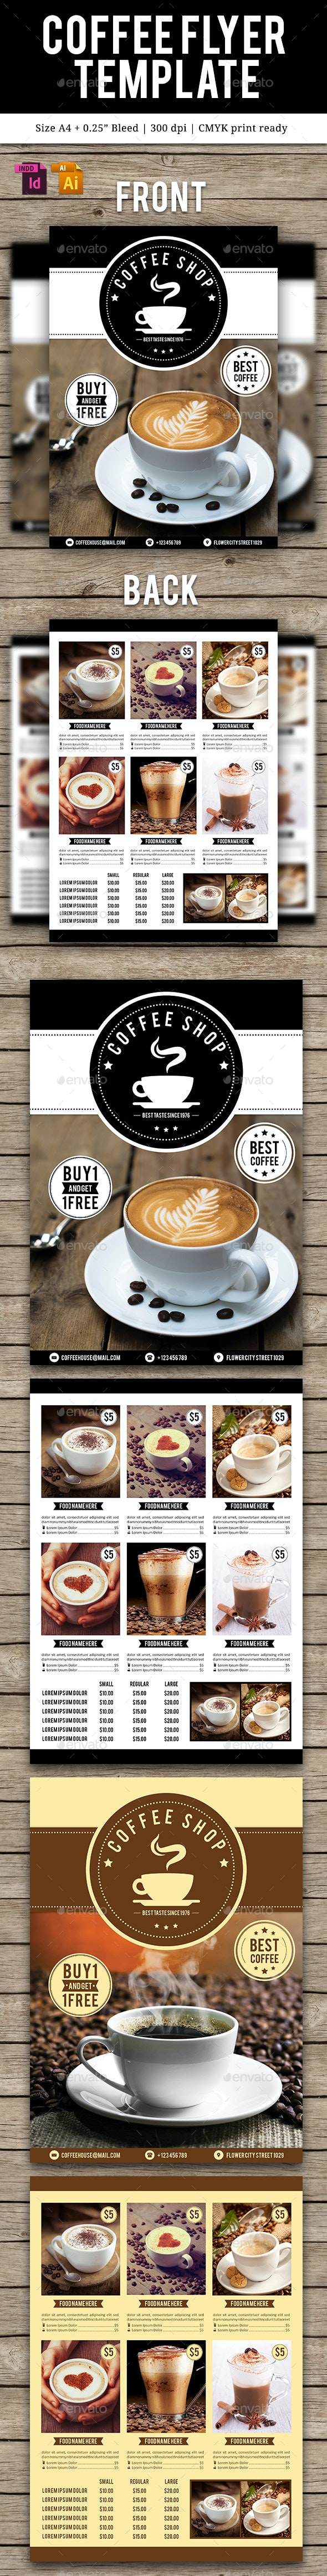 Coffee Flyer Template Vol. 2 - Flyers Print Templates